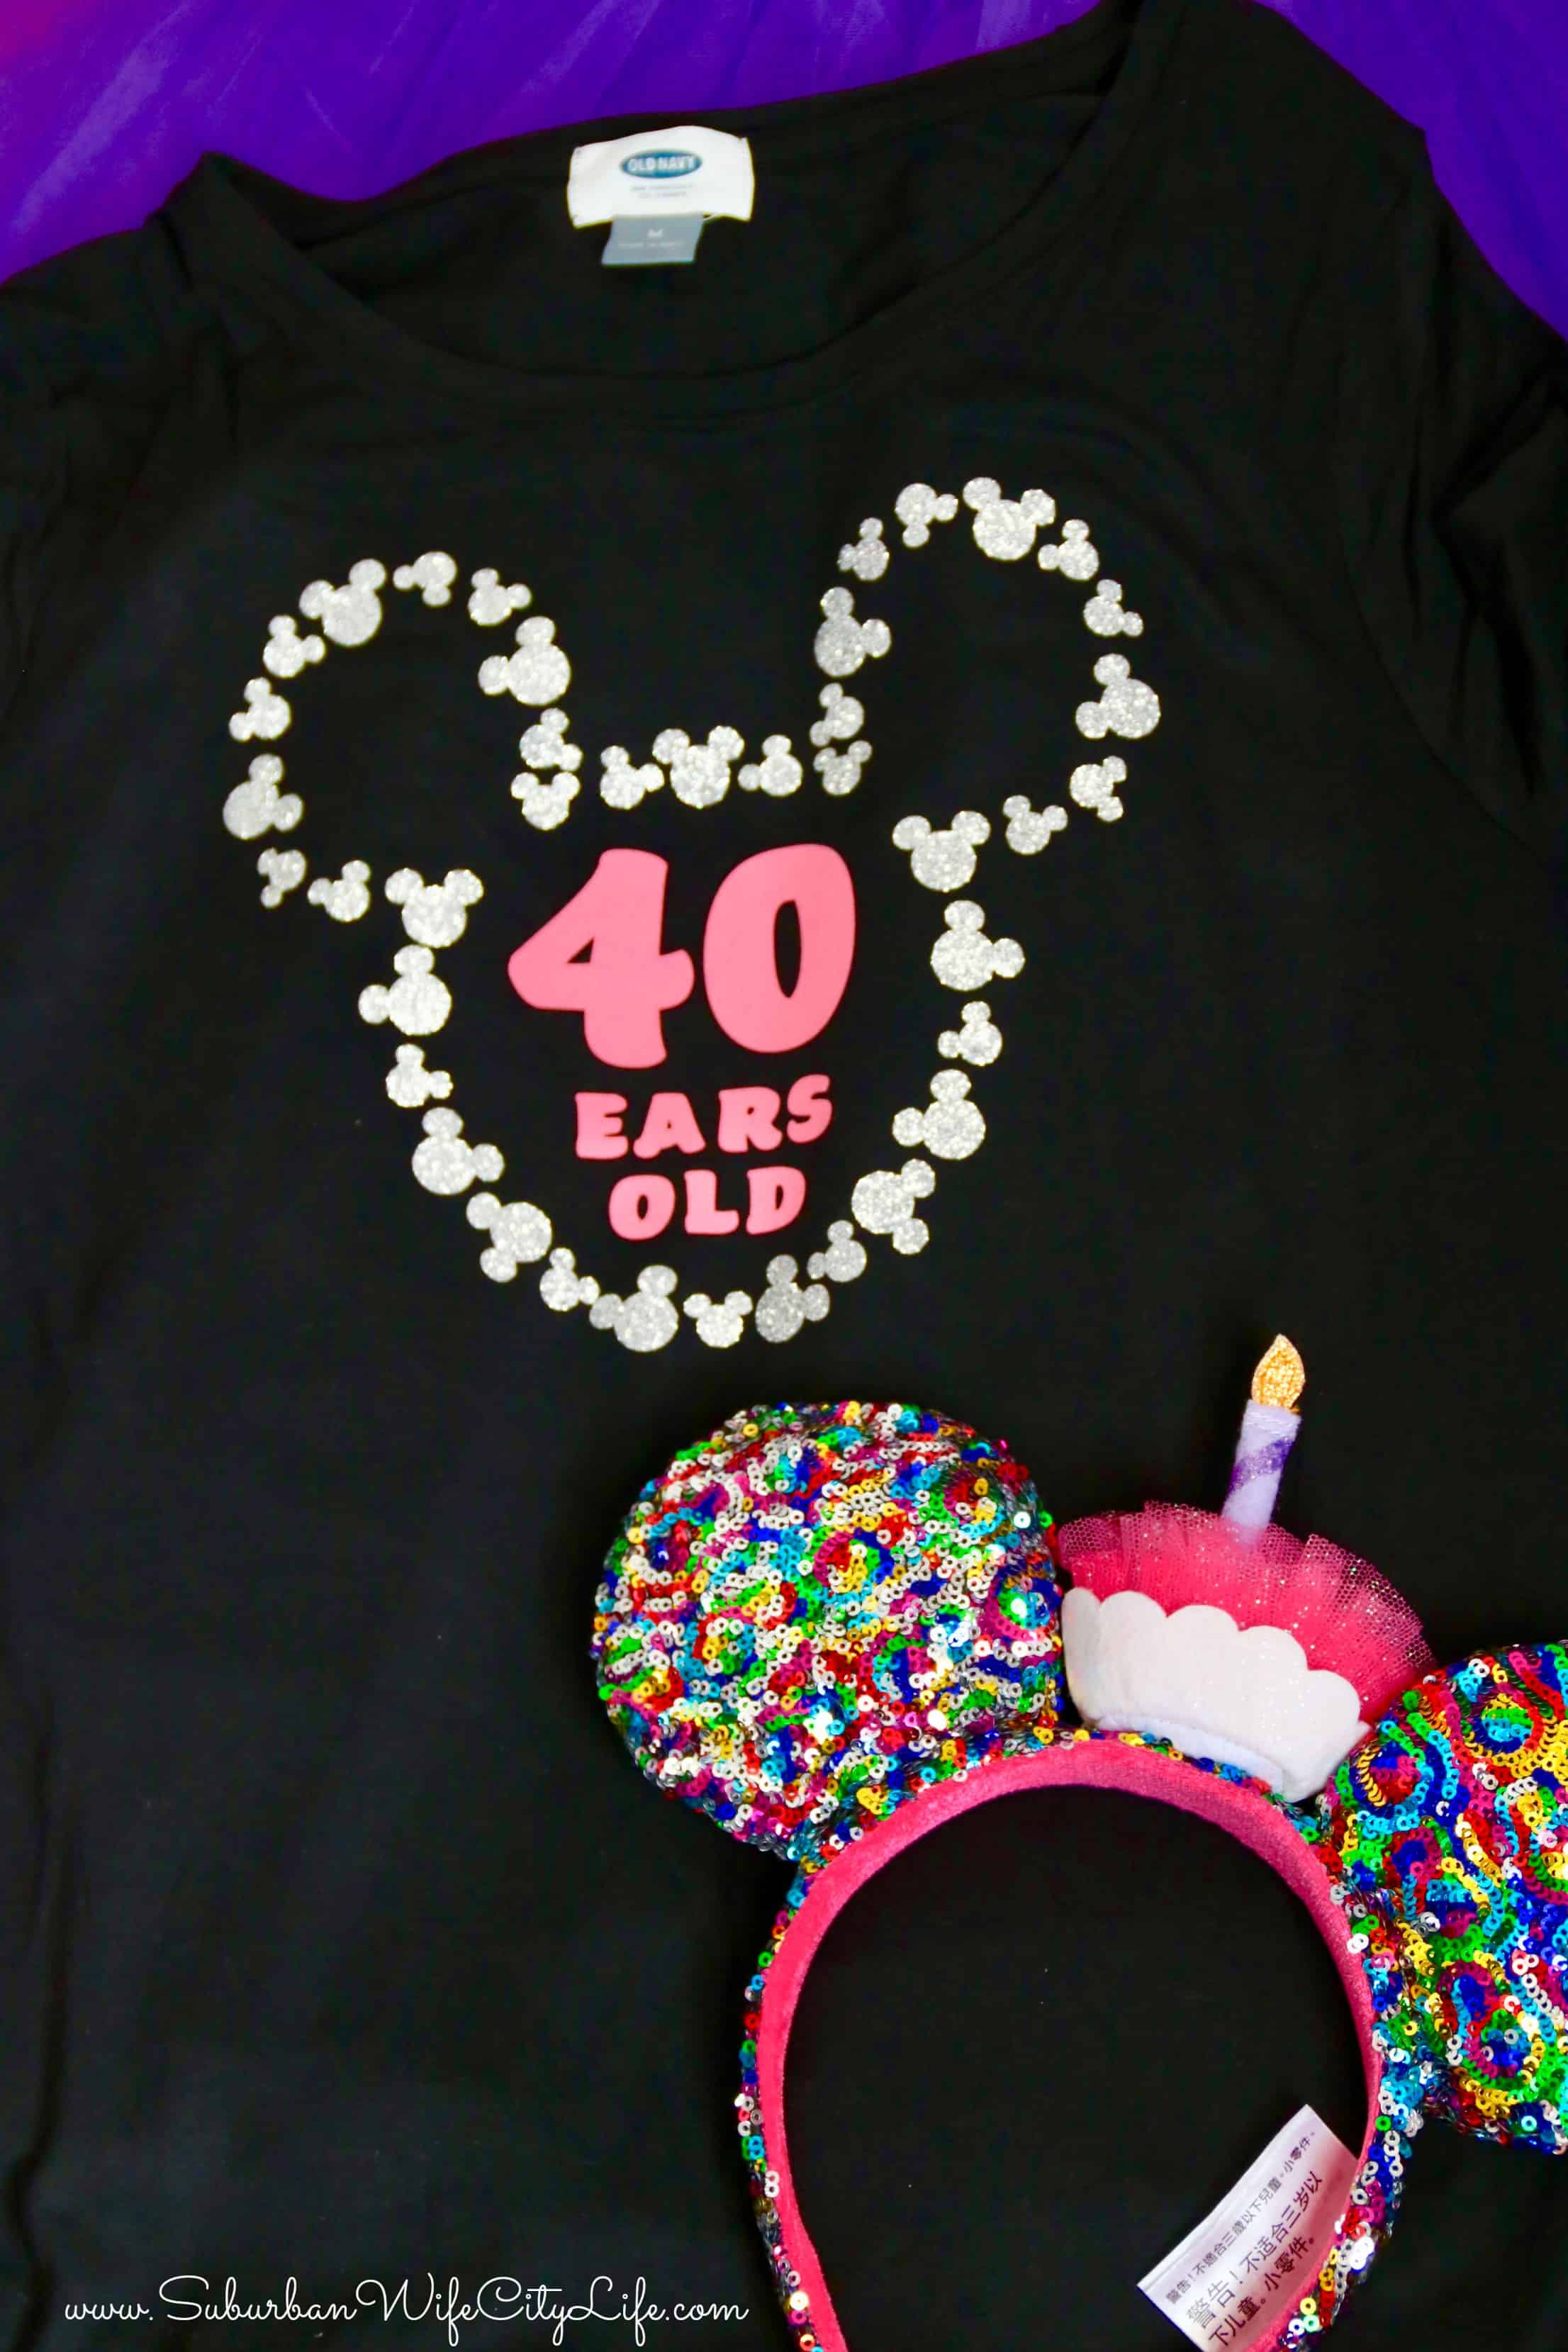 40 Ears Old Shirt Made With Cricut